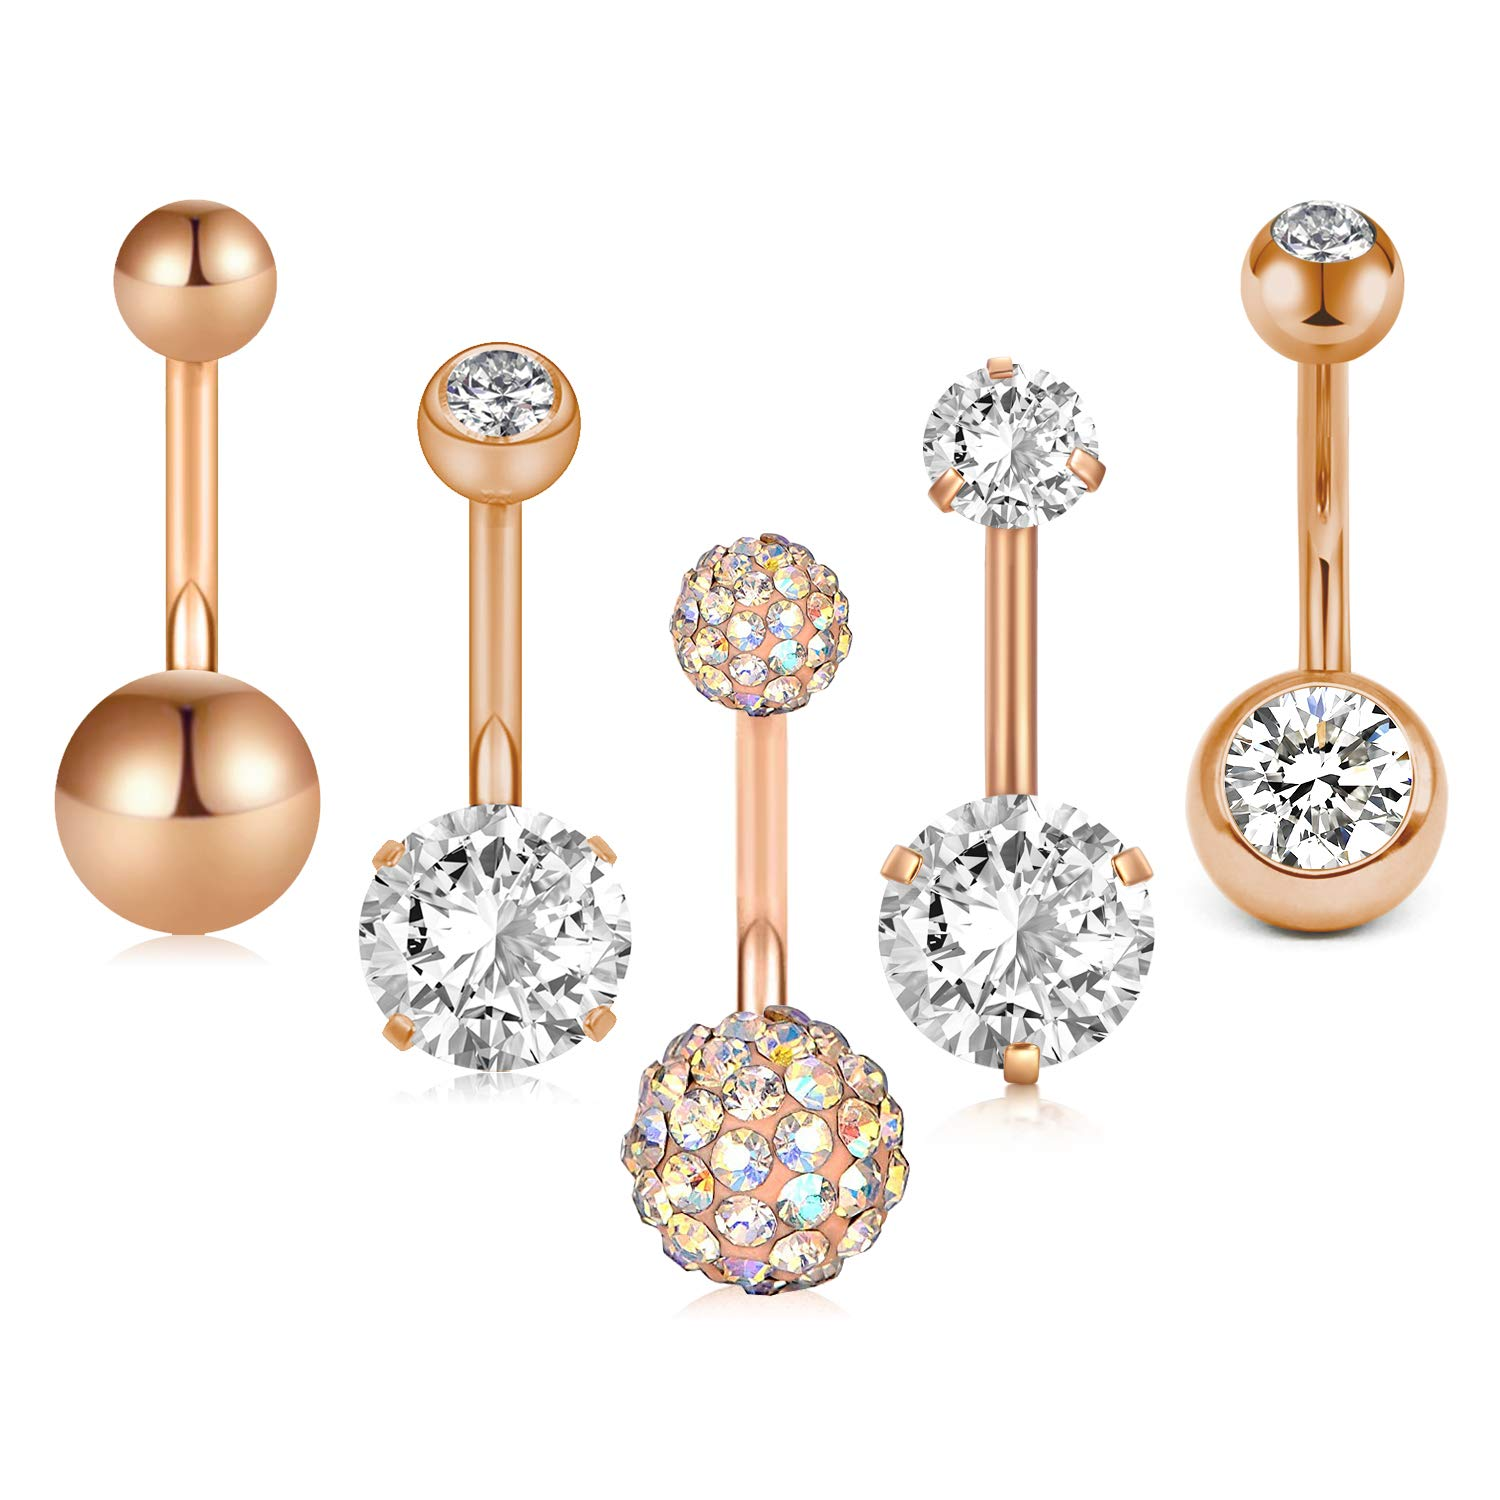 D.Bella 14G Belly Button Rings Bananabell Piercing Belly Navel Bars Curved Barbell Piercing for Women Men Body Piercing Jewellery 10MM 5PCS